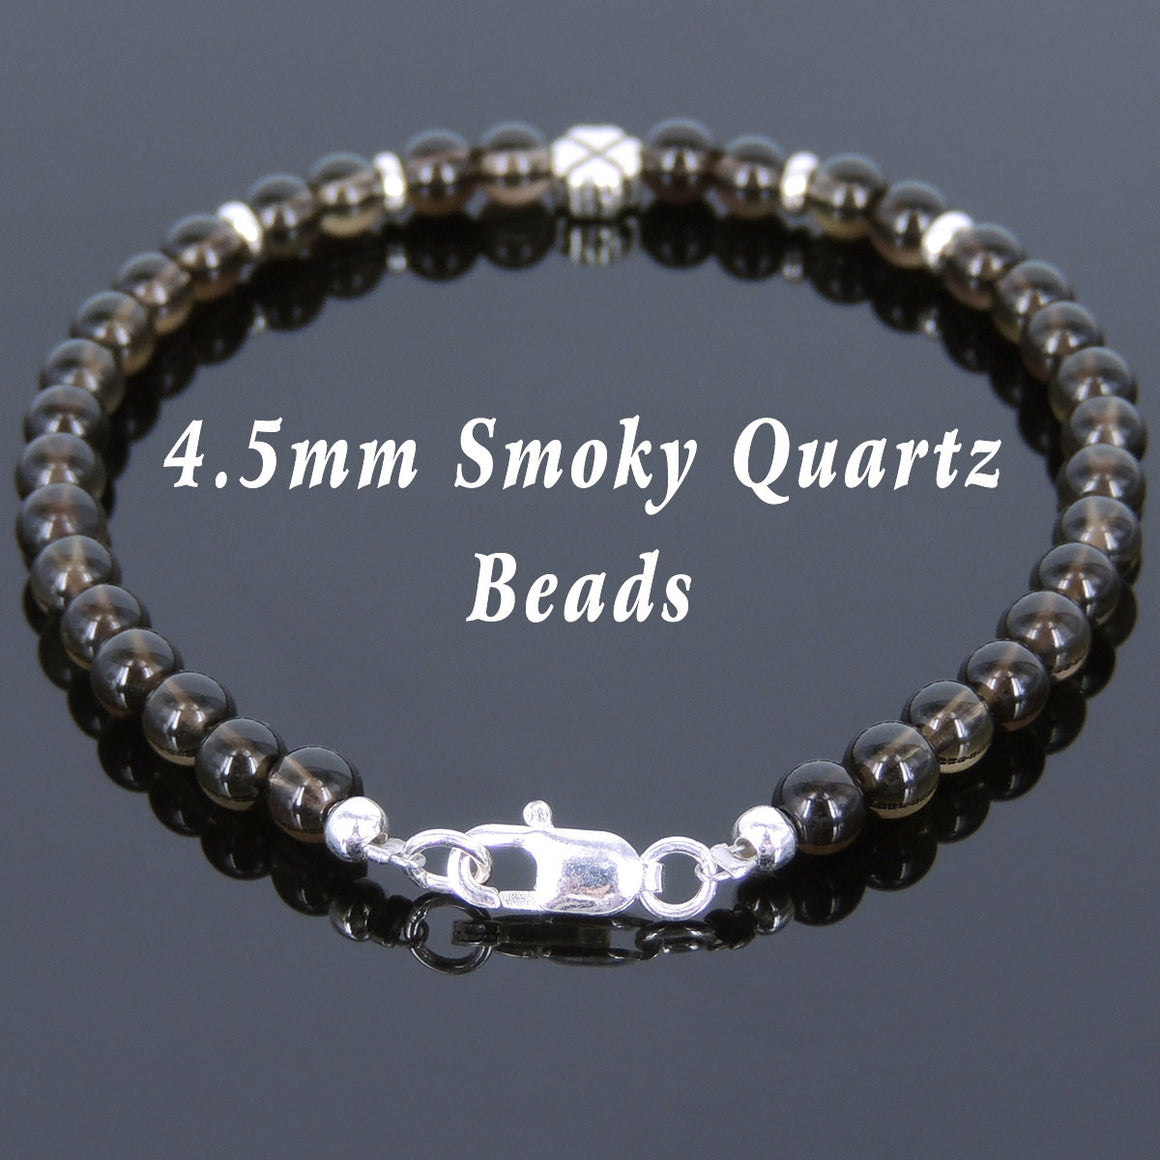 4.5mm Smoky Quartz Healing Gemstone Bracelet with S925 Sterling Silver Four Leaf Clover Seamless Spacers & Clasp - Handmade by Gem & Silver BR562